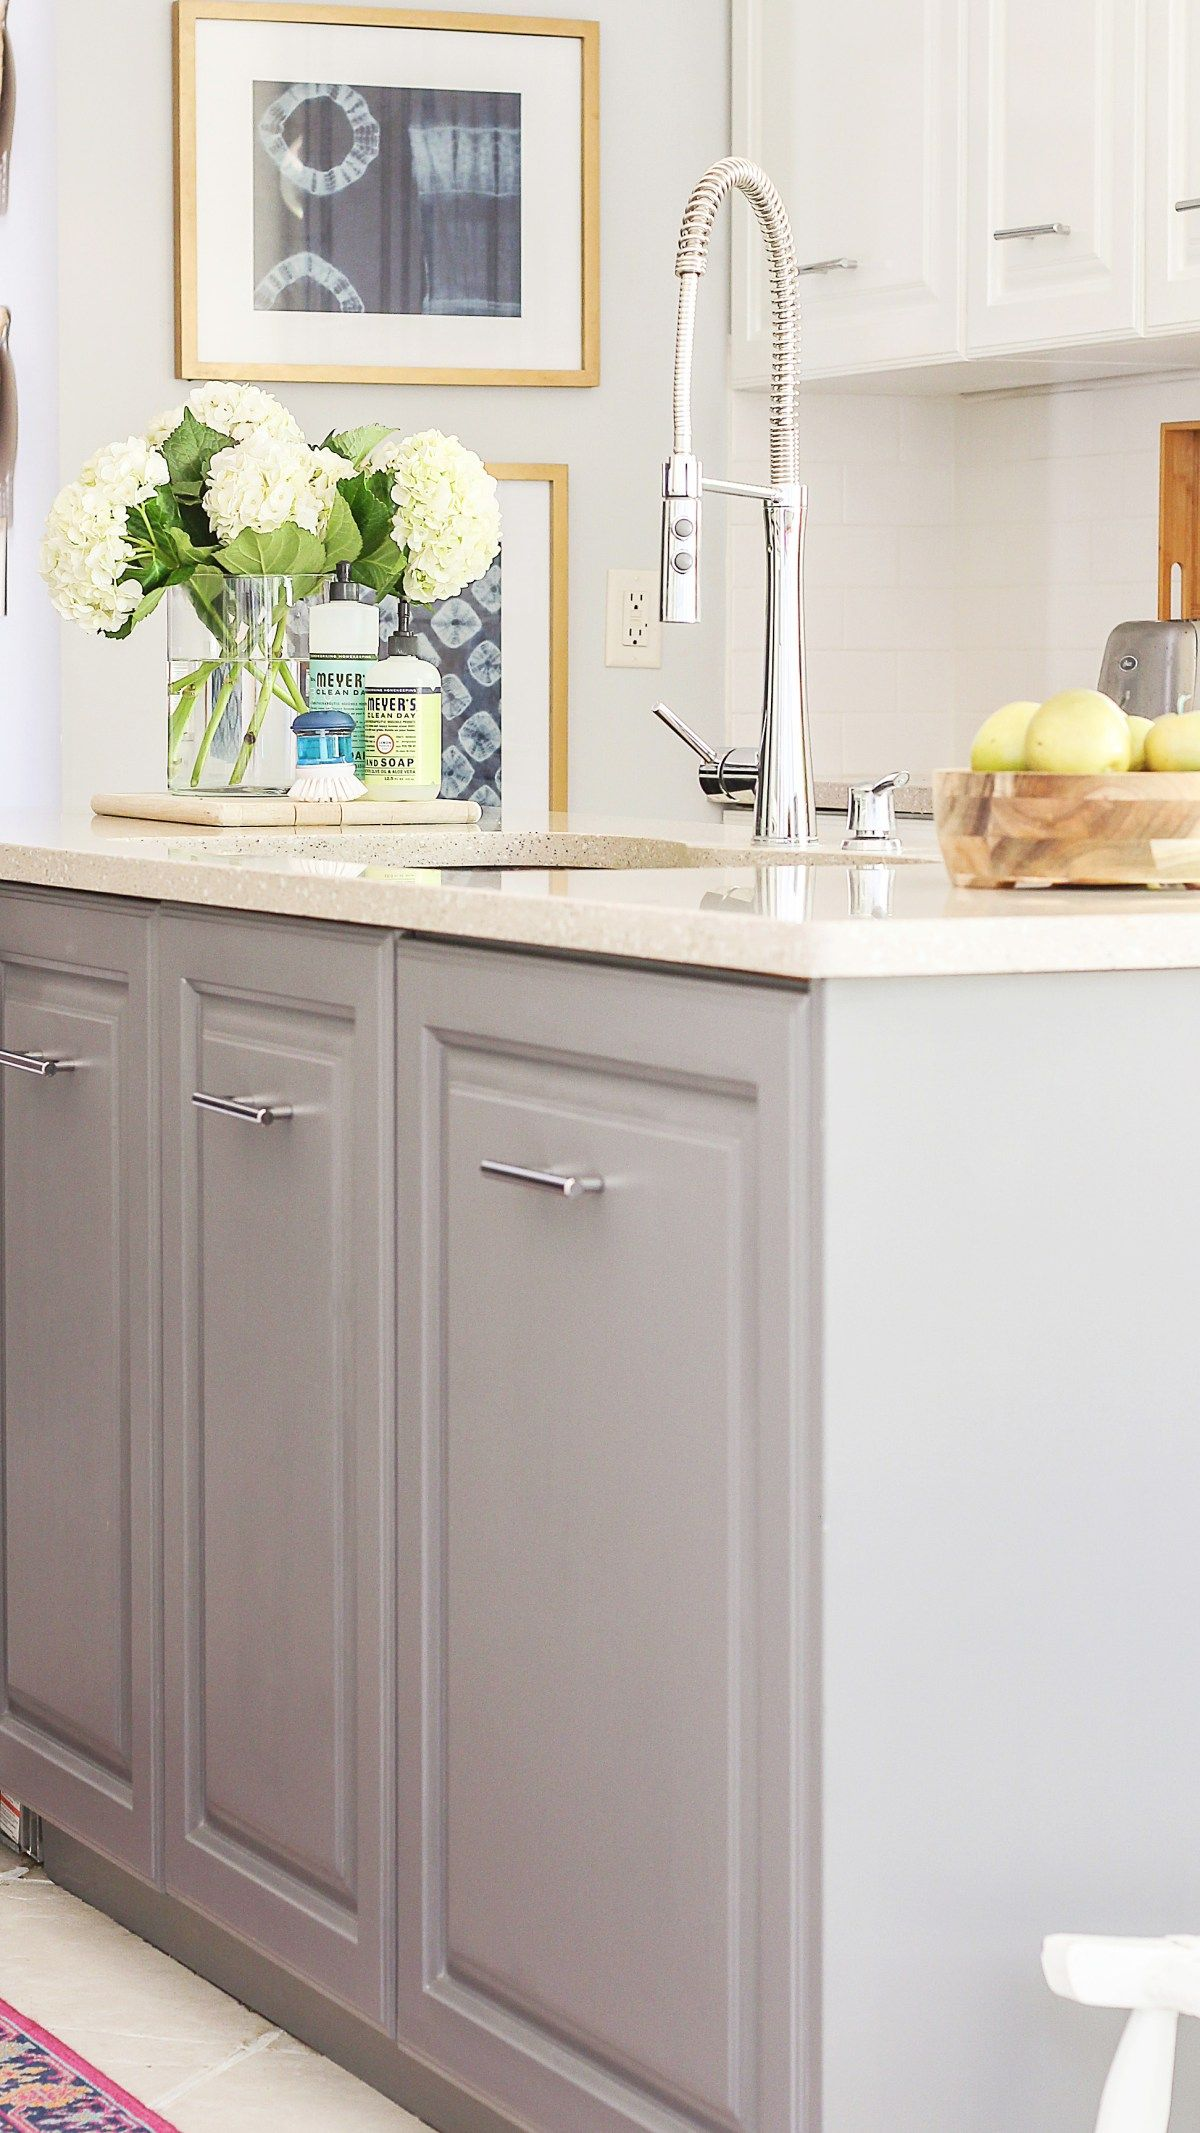 A Review Of My Milk Paint Cabinets 6 Month Follow Up Milk Paint Kitchen Cabinets Kitchen Paint Diy Kitchen Cabinets